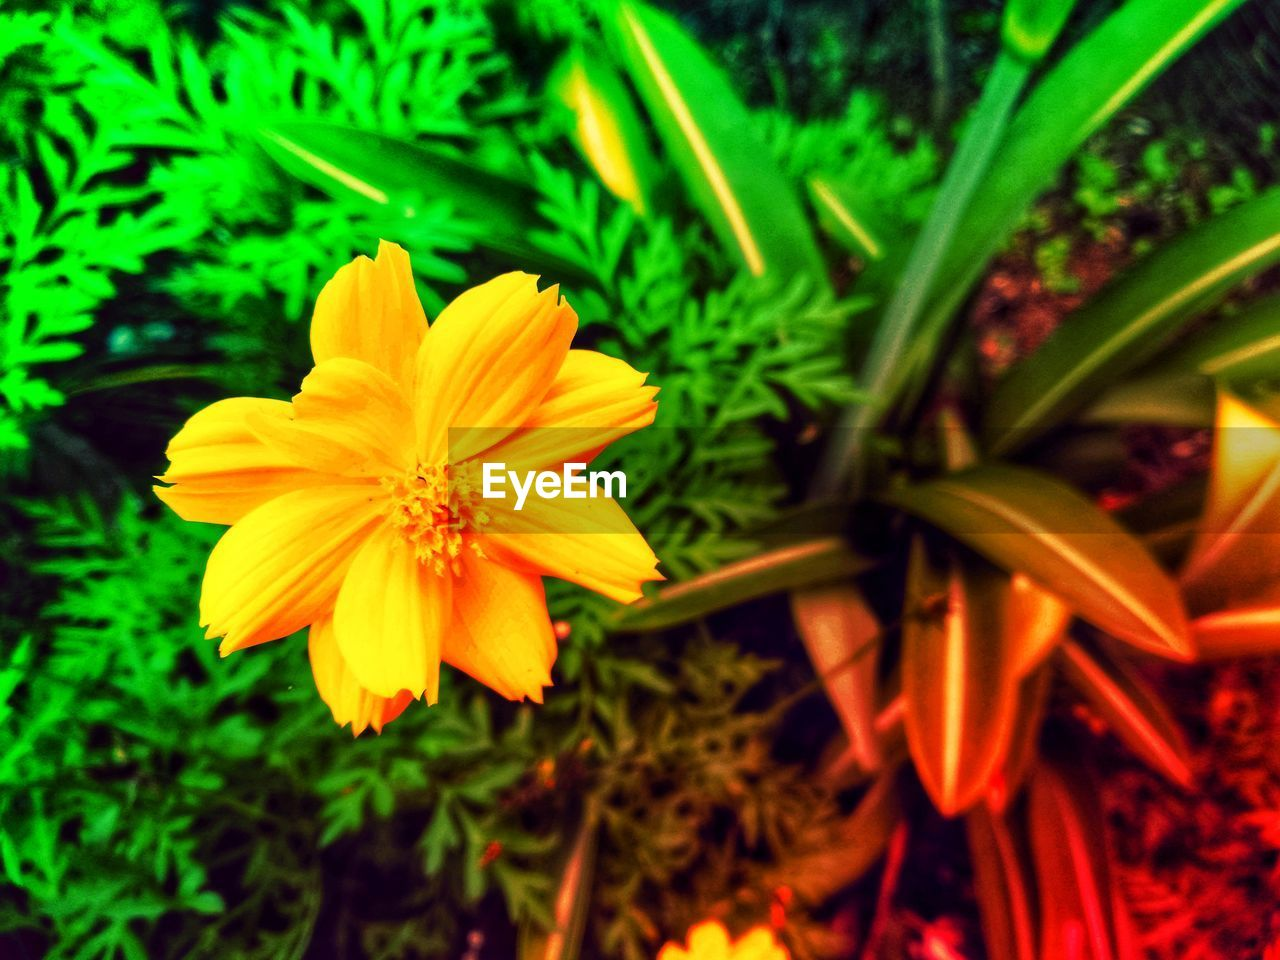 flowering plant, flower, freshness, petal, fragility, plant, vulnerability, beauty in nature, growth, flower head, inflorescence, close-up, yellow, nature, day, no people, focus on foreground, pollen, land, green color, gazania